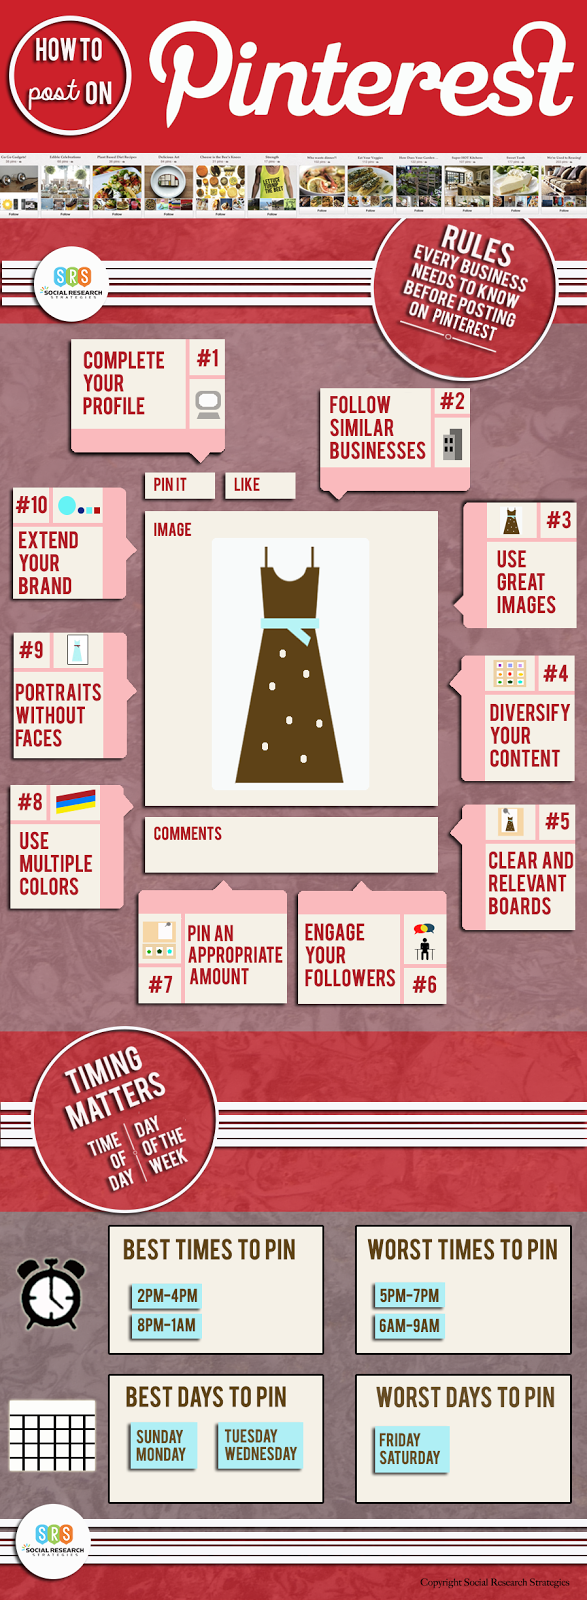 The 10 Rules That Every Business Needs To Know Before Sharing photos On Pinterest - infographic